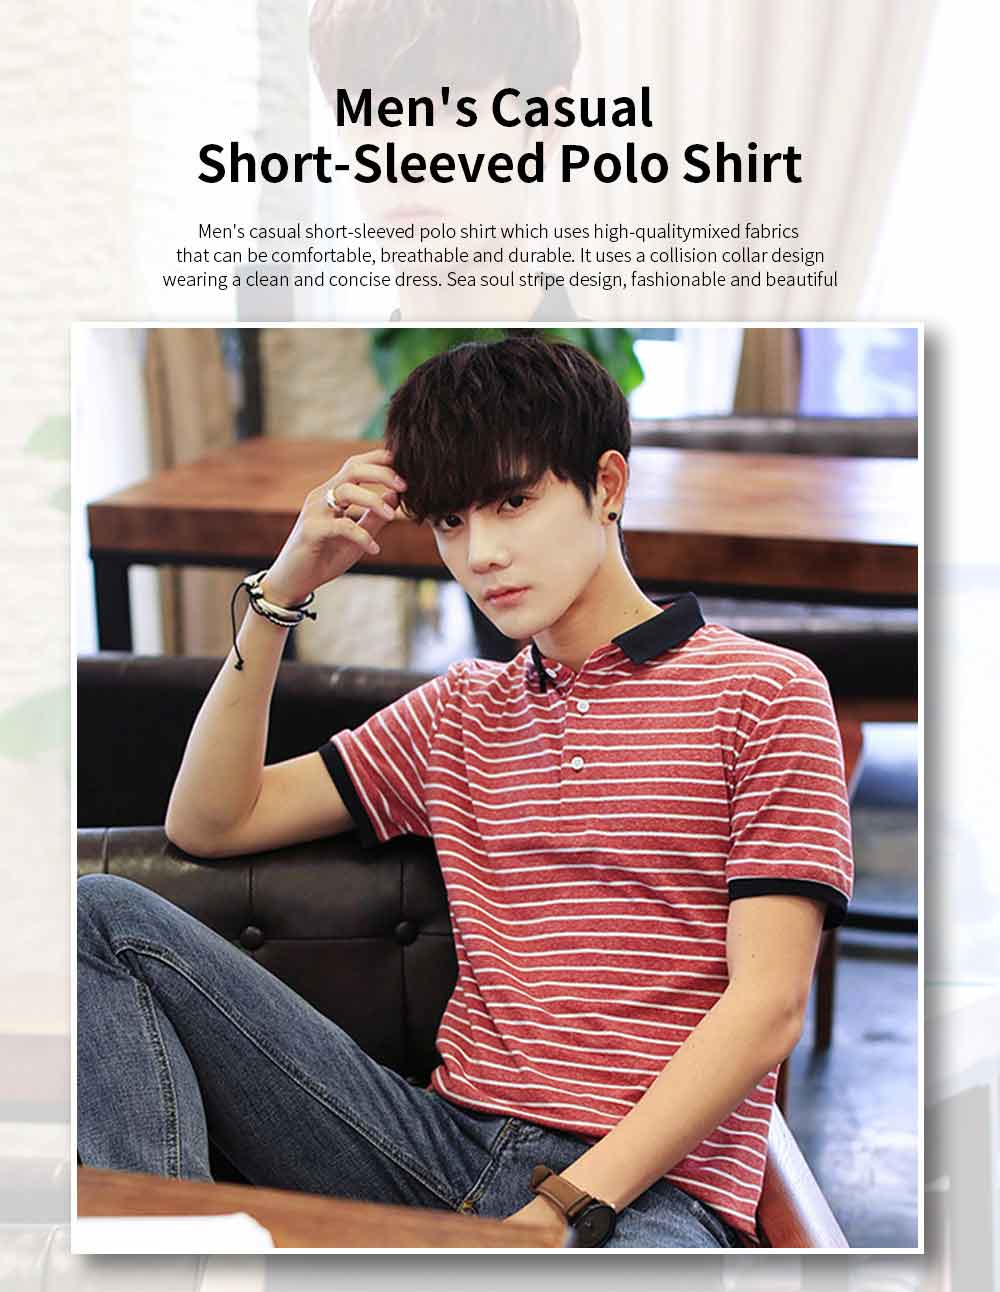 Men's Casual Short-Sleeved Polo Shirt Korean-Style Fashionable Striped Shirt For Summer 0